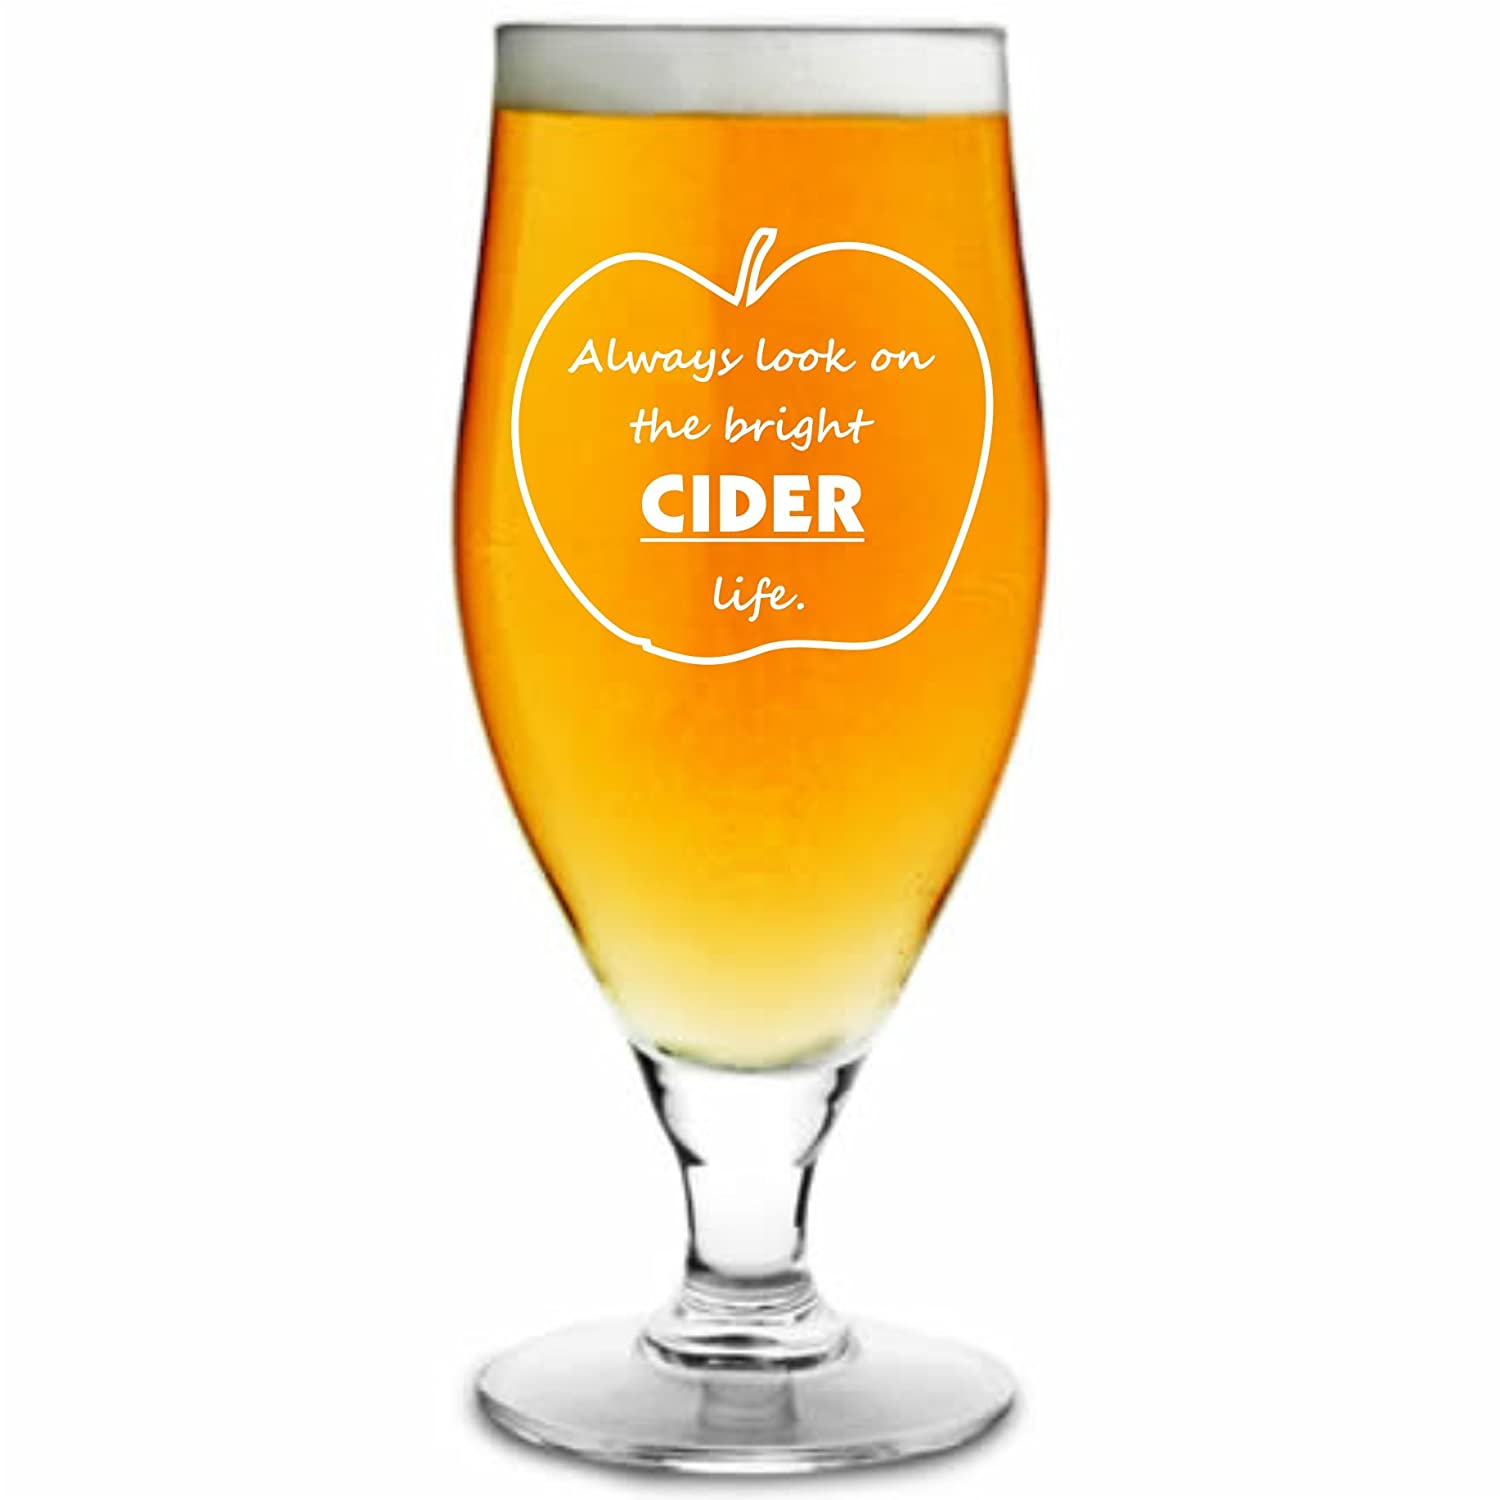 """Always Look on The Bright Cider Life"" Stemmed Cider Glass Lapal Dimension"